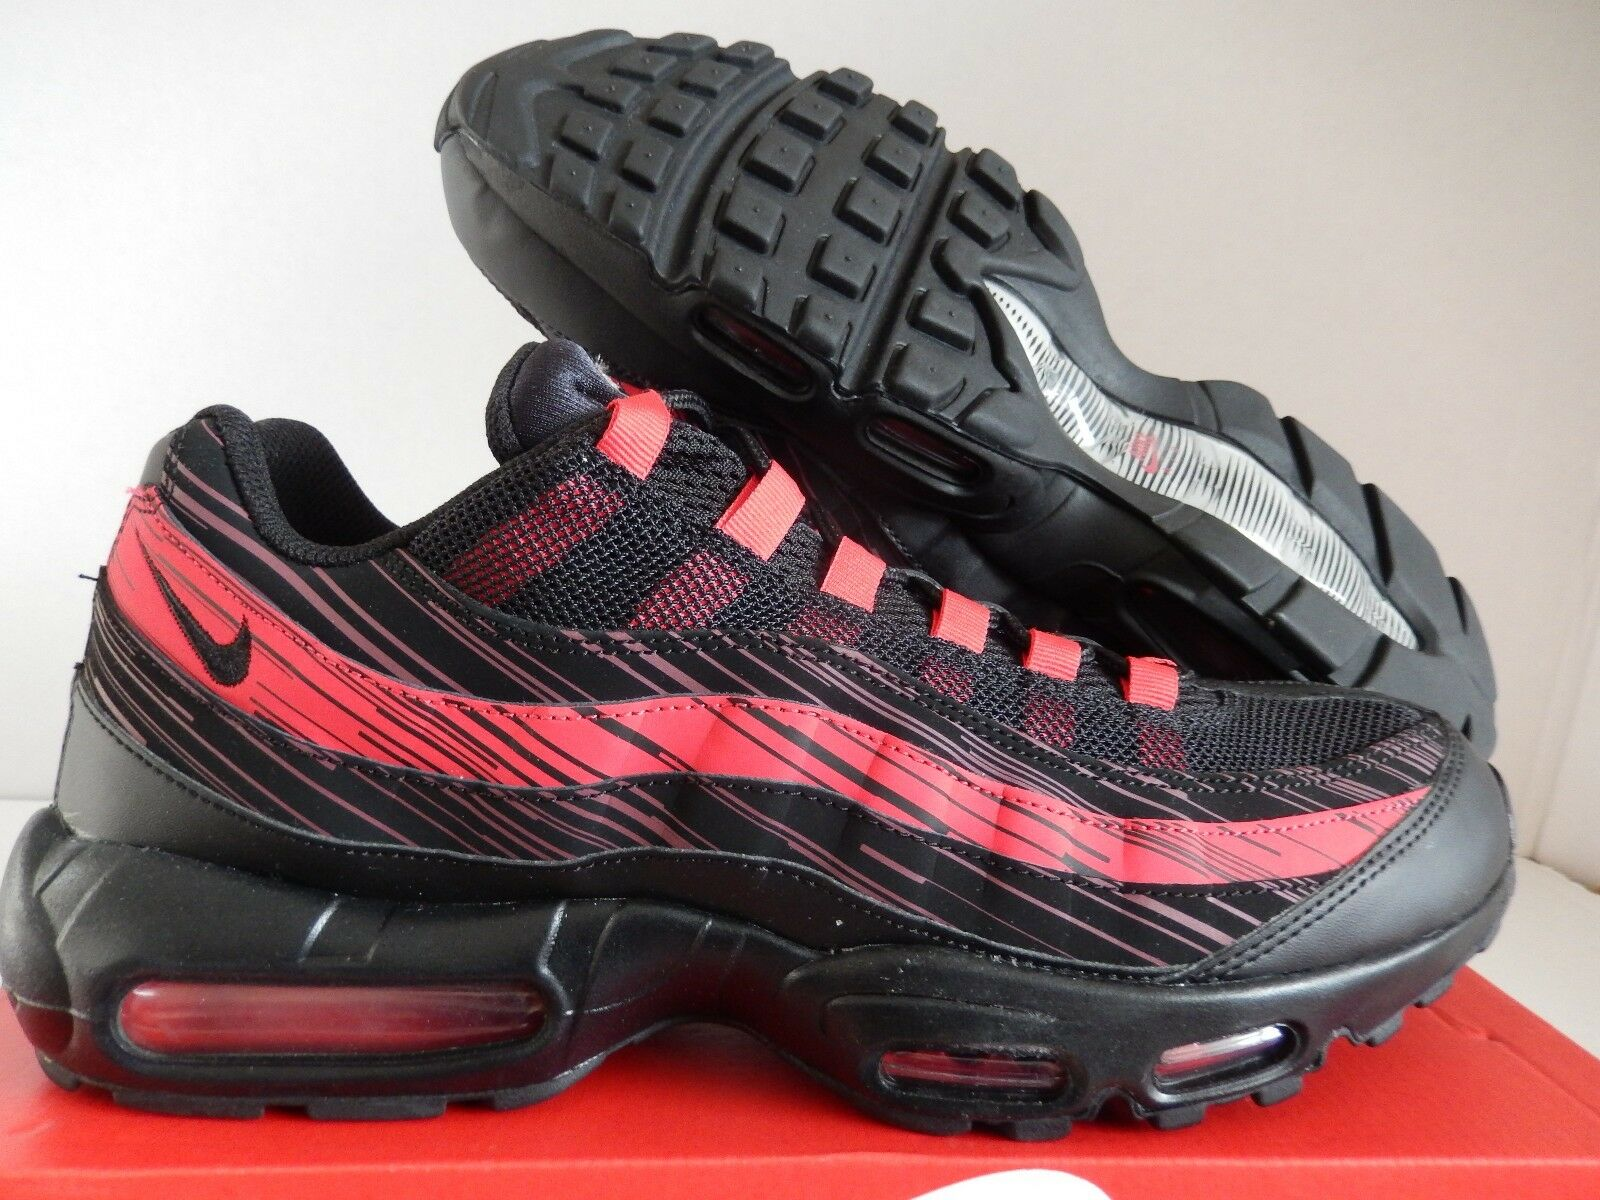 DS Men s Nike Air Max 95 Premium OG Shoes Red Black 538416-066 Size 13 for  sale online  5962ac7b7